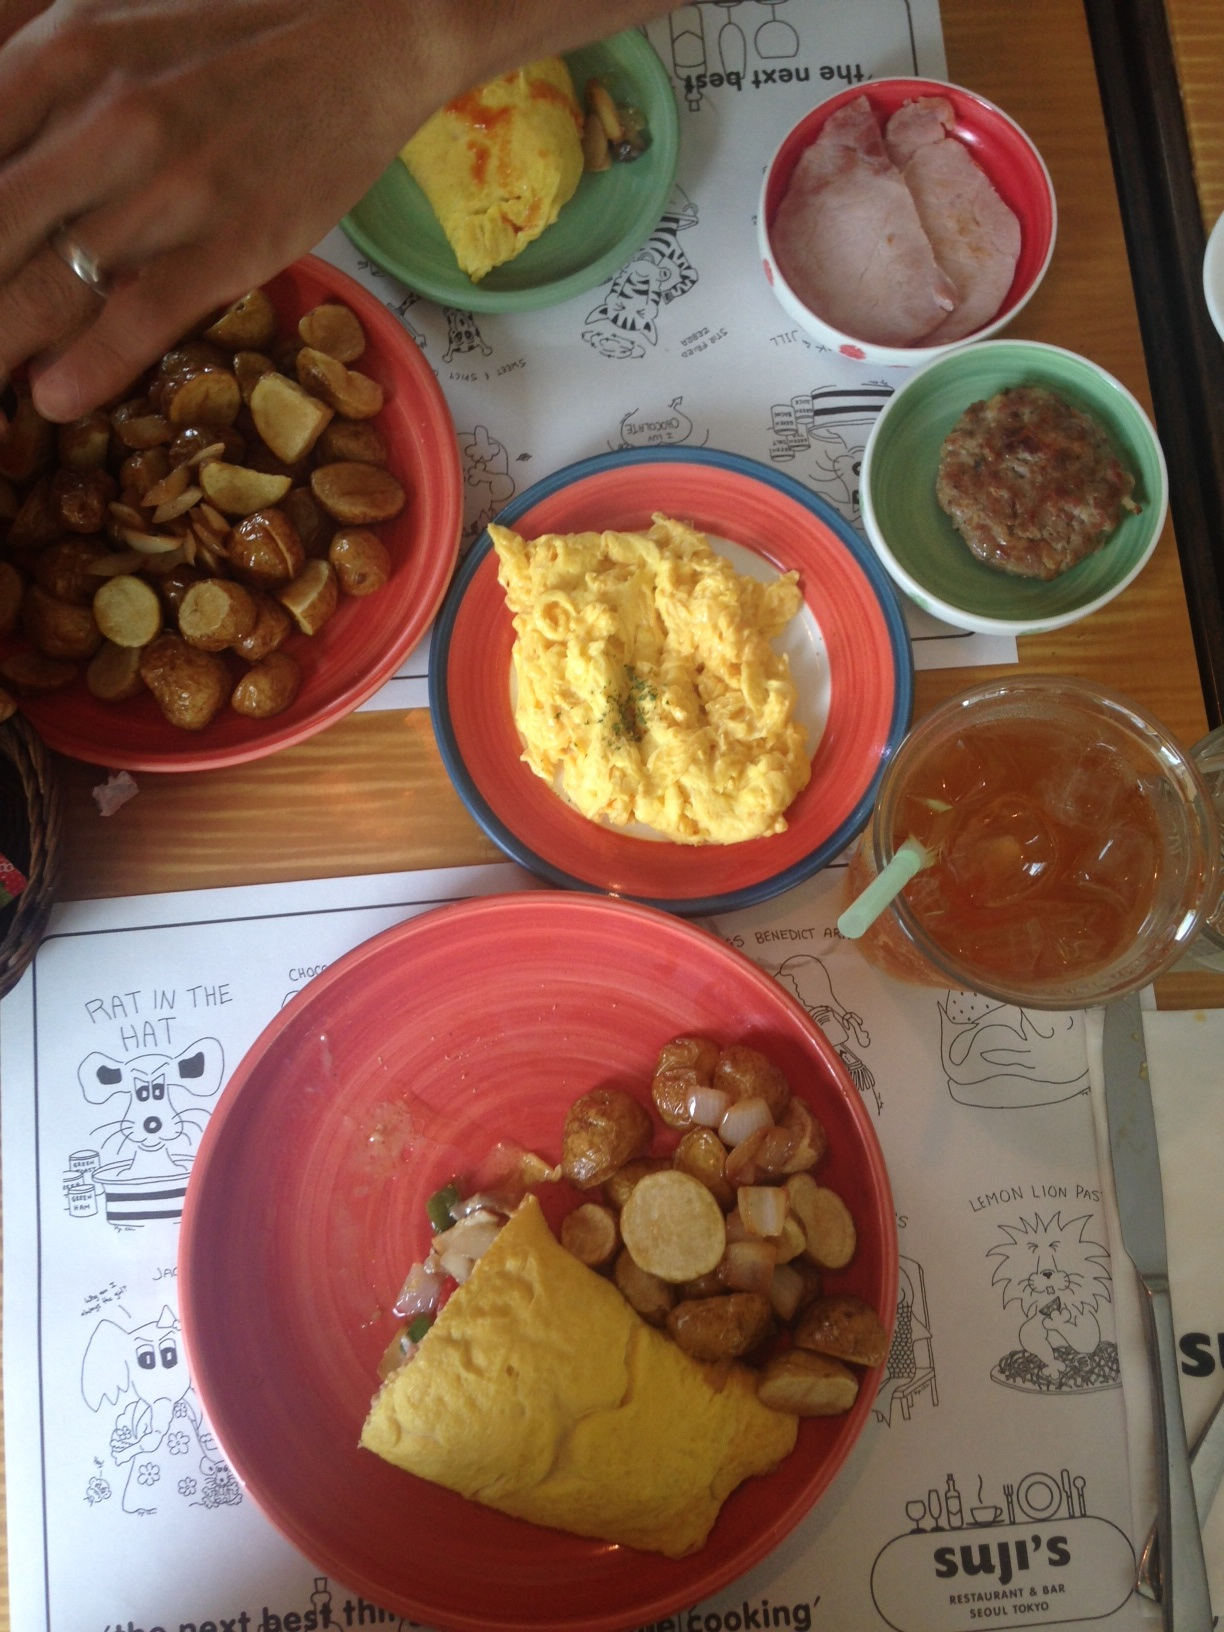 Brunch @Suji's: Omelette with bell peppers, onions and mushrooms, home fries, scrambled eggs, breakfast sausage, ham